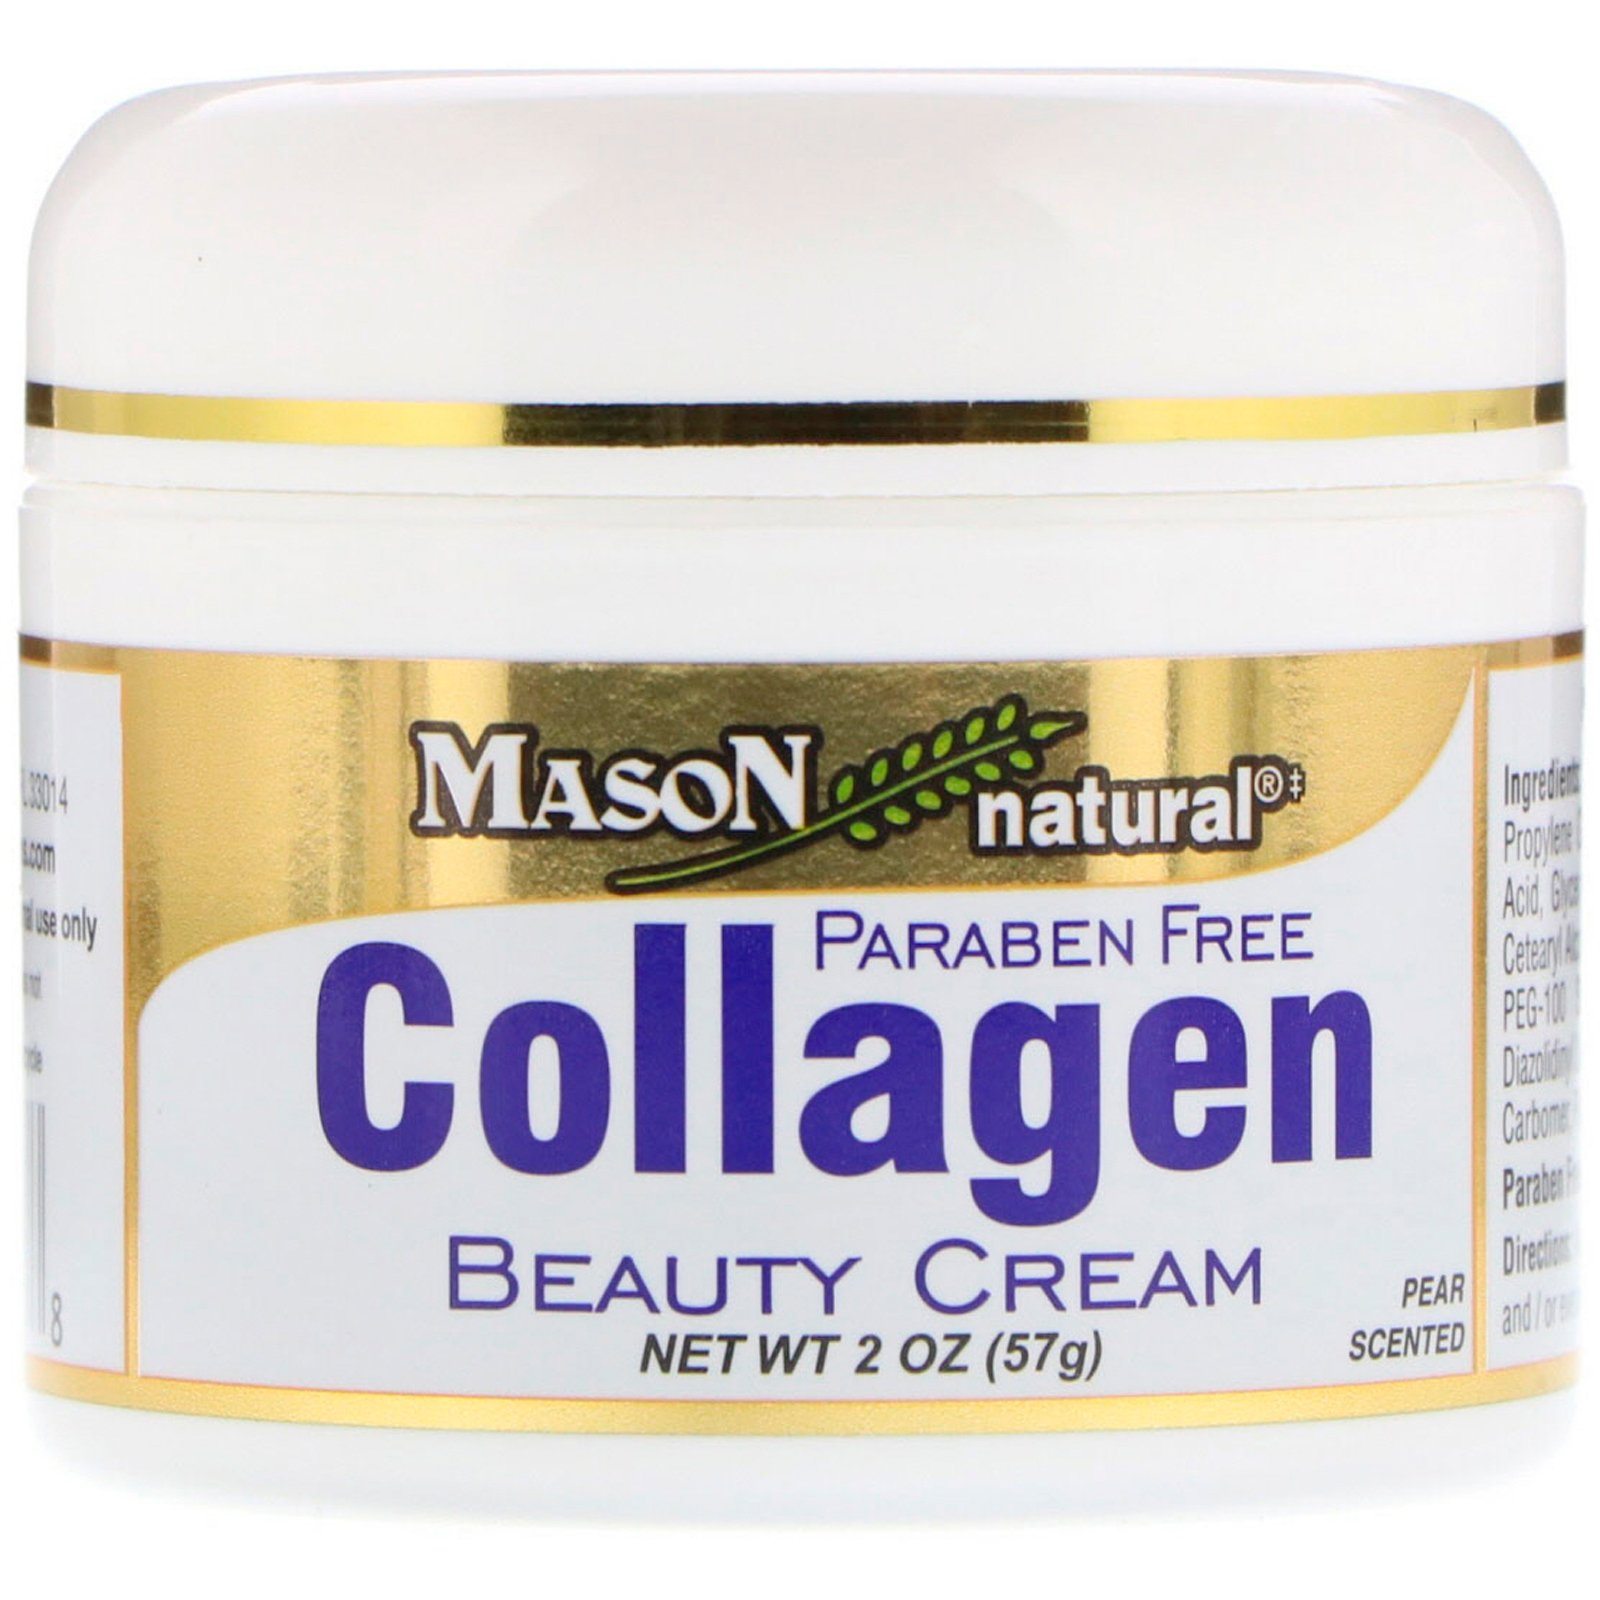 Mason Vitamins, Collagen Beauty Cream, Pear Scented, 2 oz (57 g) (Pack of 2) Otiderm Ear Cleanser for Dogs & Cats (8 fl oz)